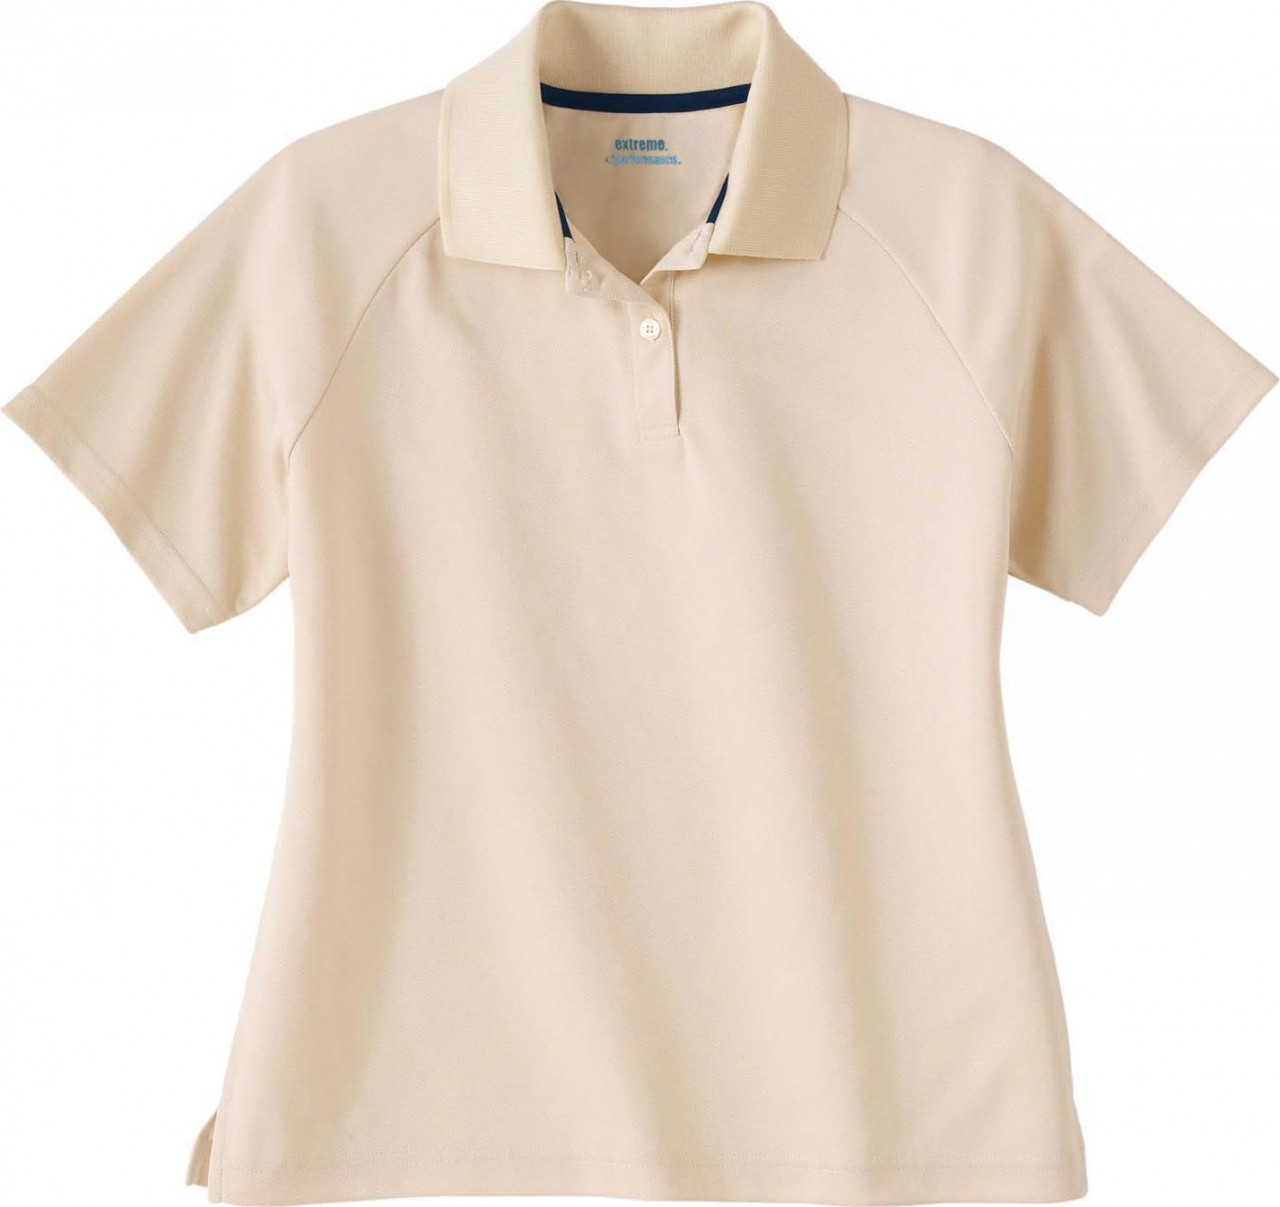 Sand - 75046 Extreme Ladies' Eperformance Pique Polo Shirt | BlankClothing.ca